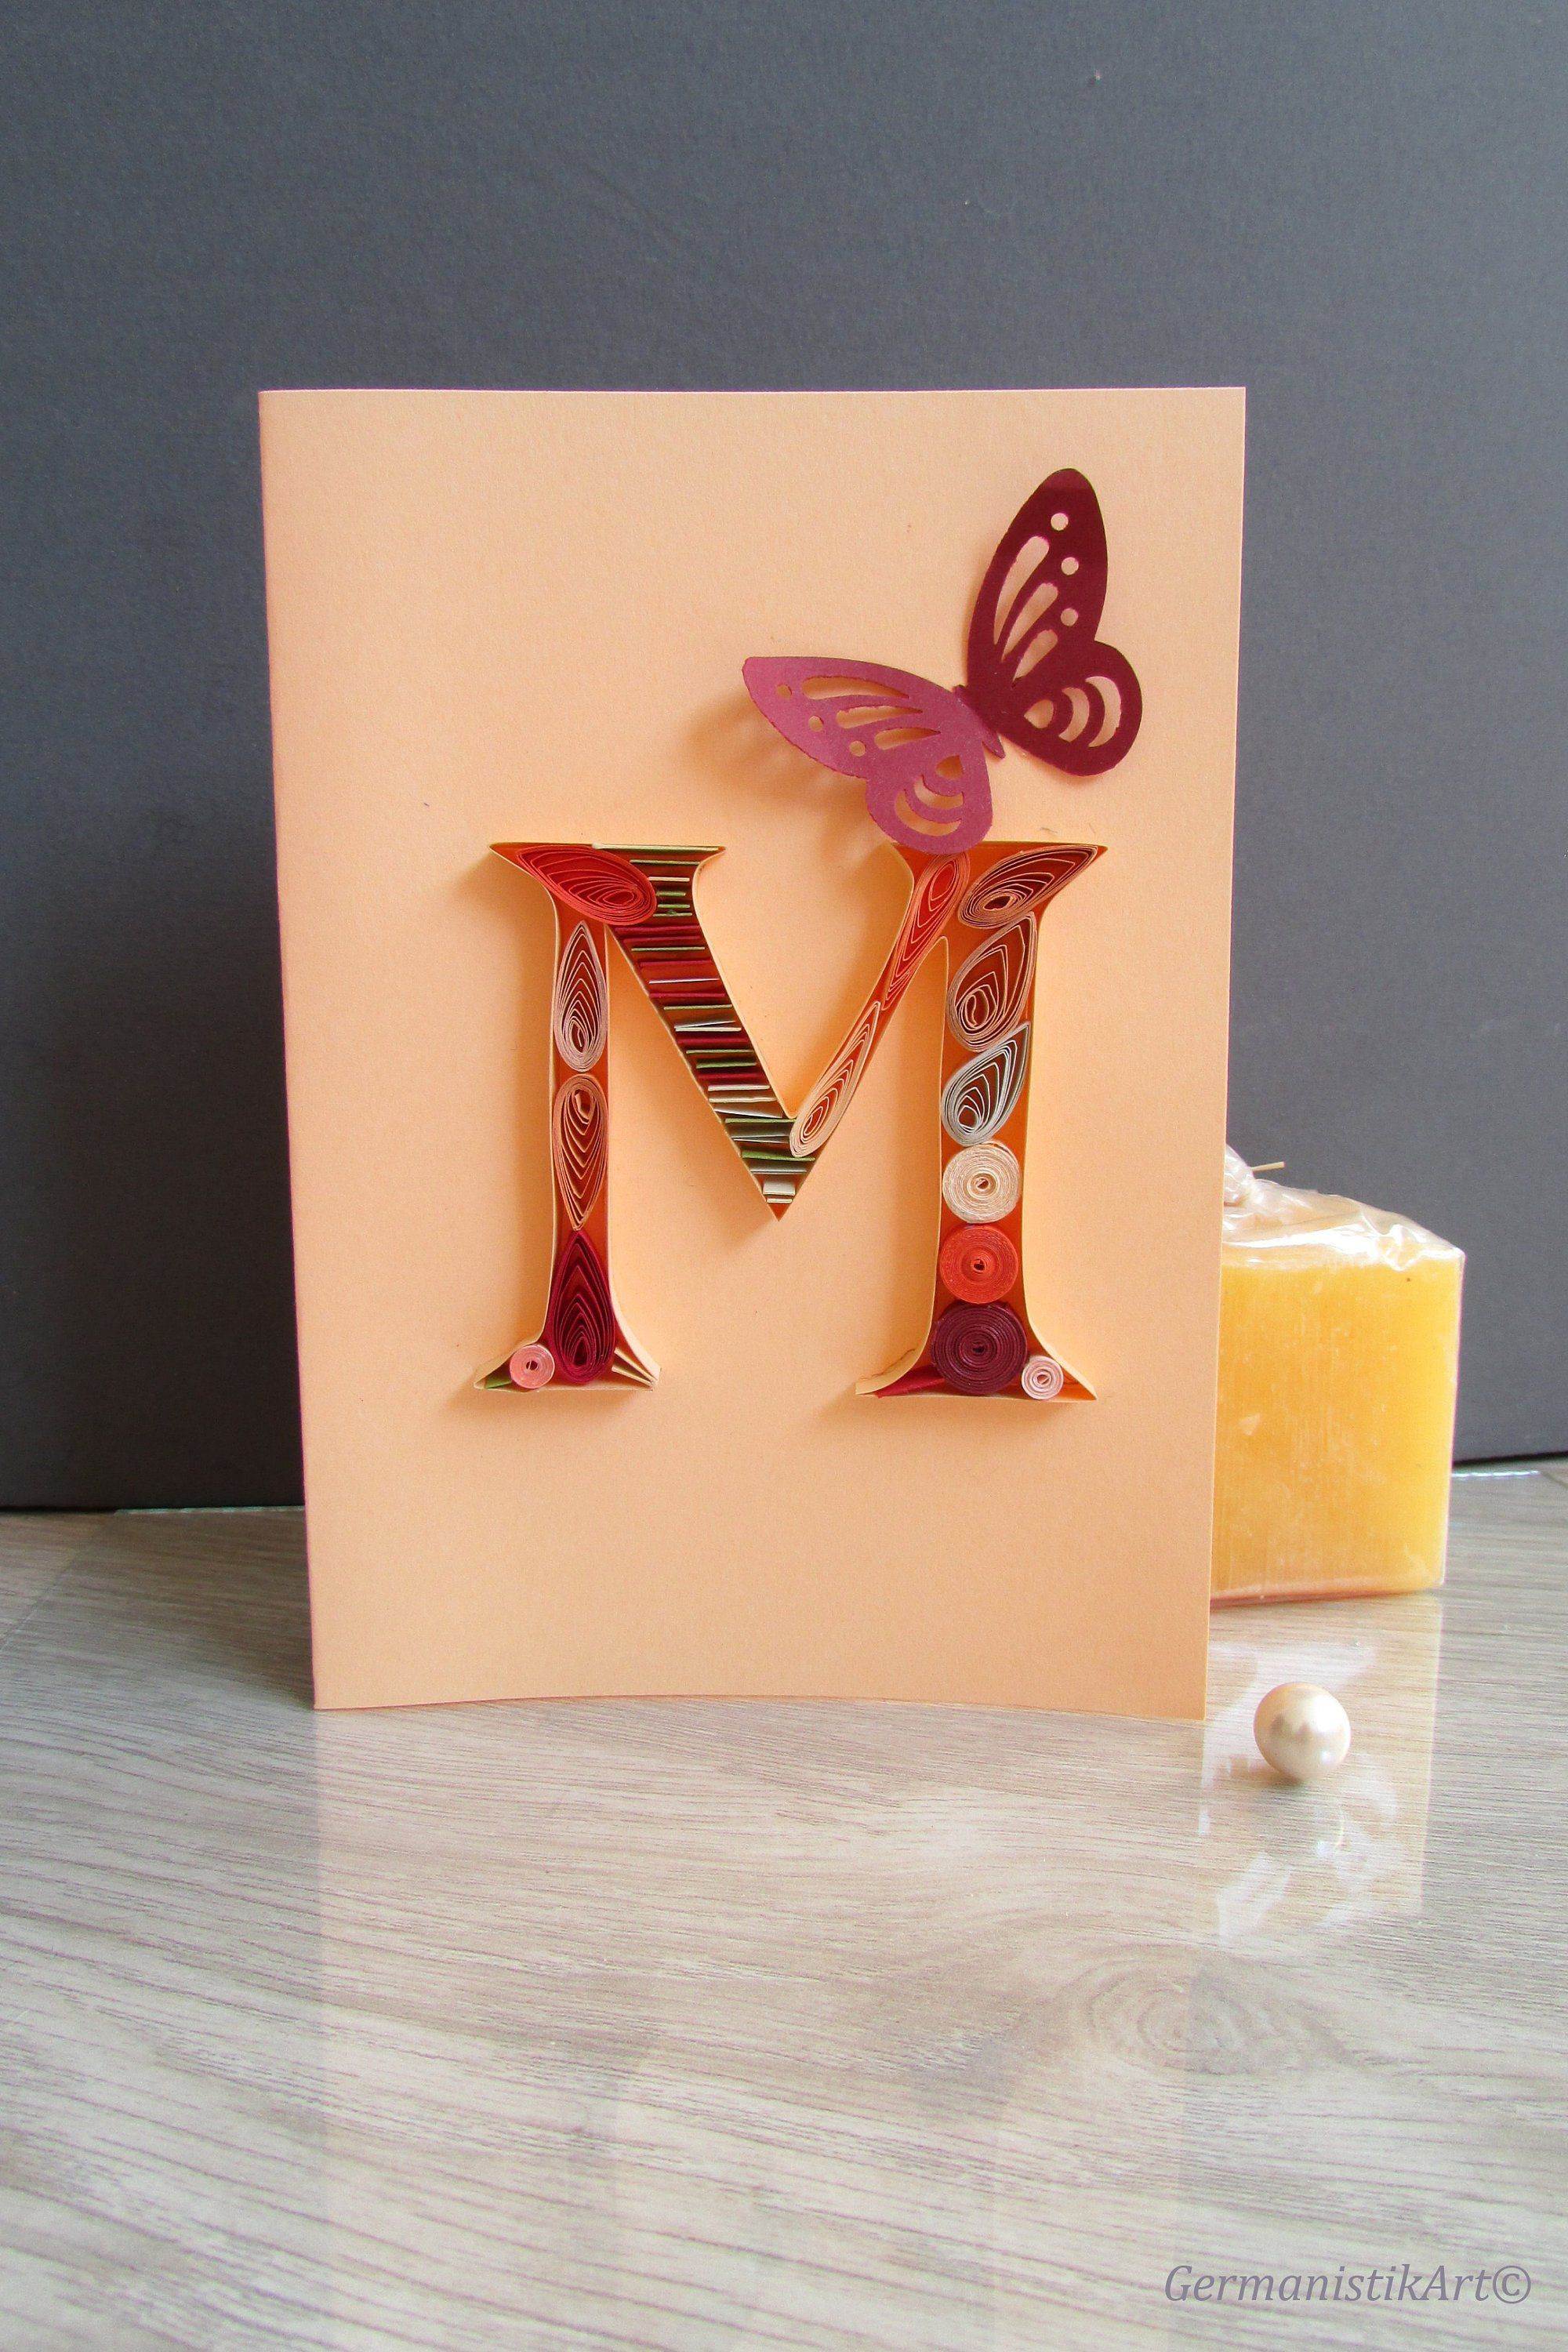 Personalized M Initial Letter Birthday Card Paper Quilling Etsy Quilled Paper Art Quilling Paper Quilling